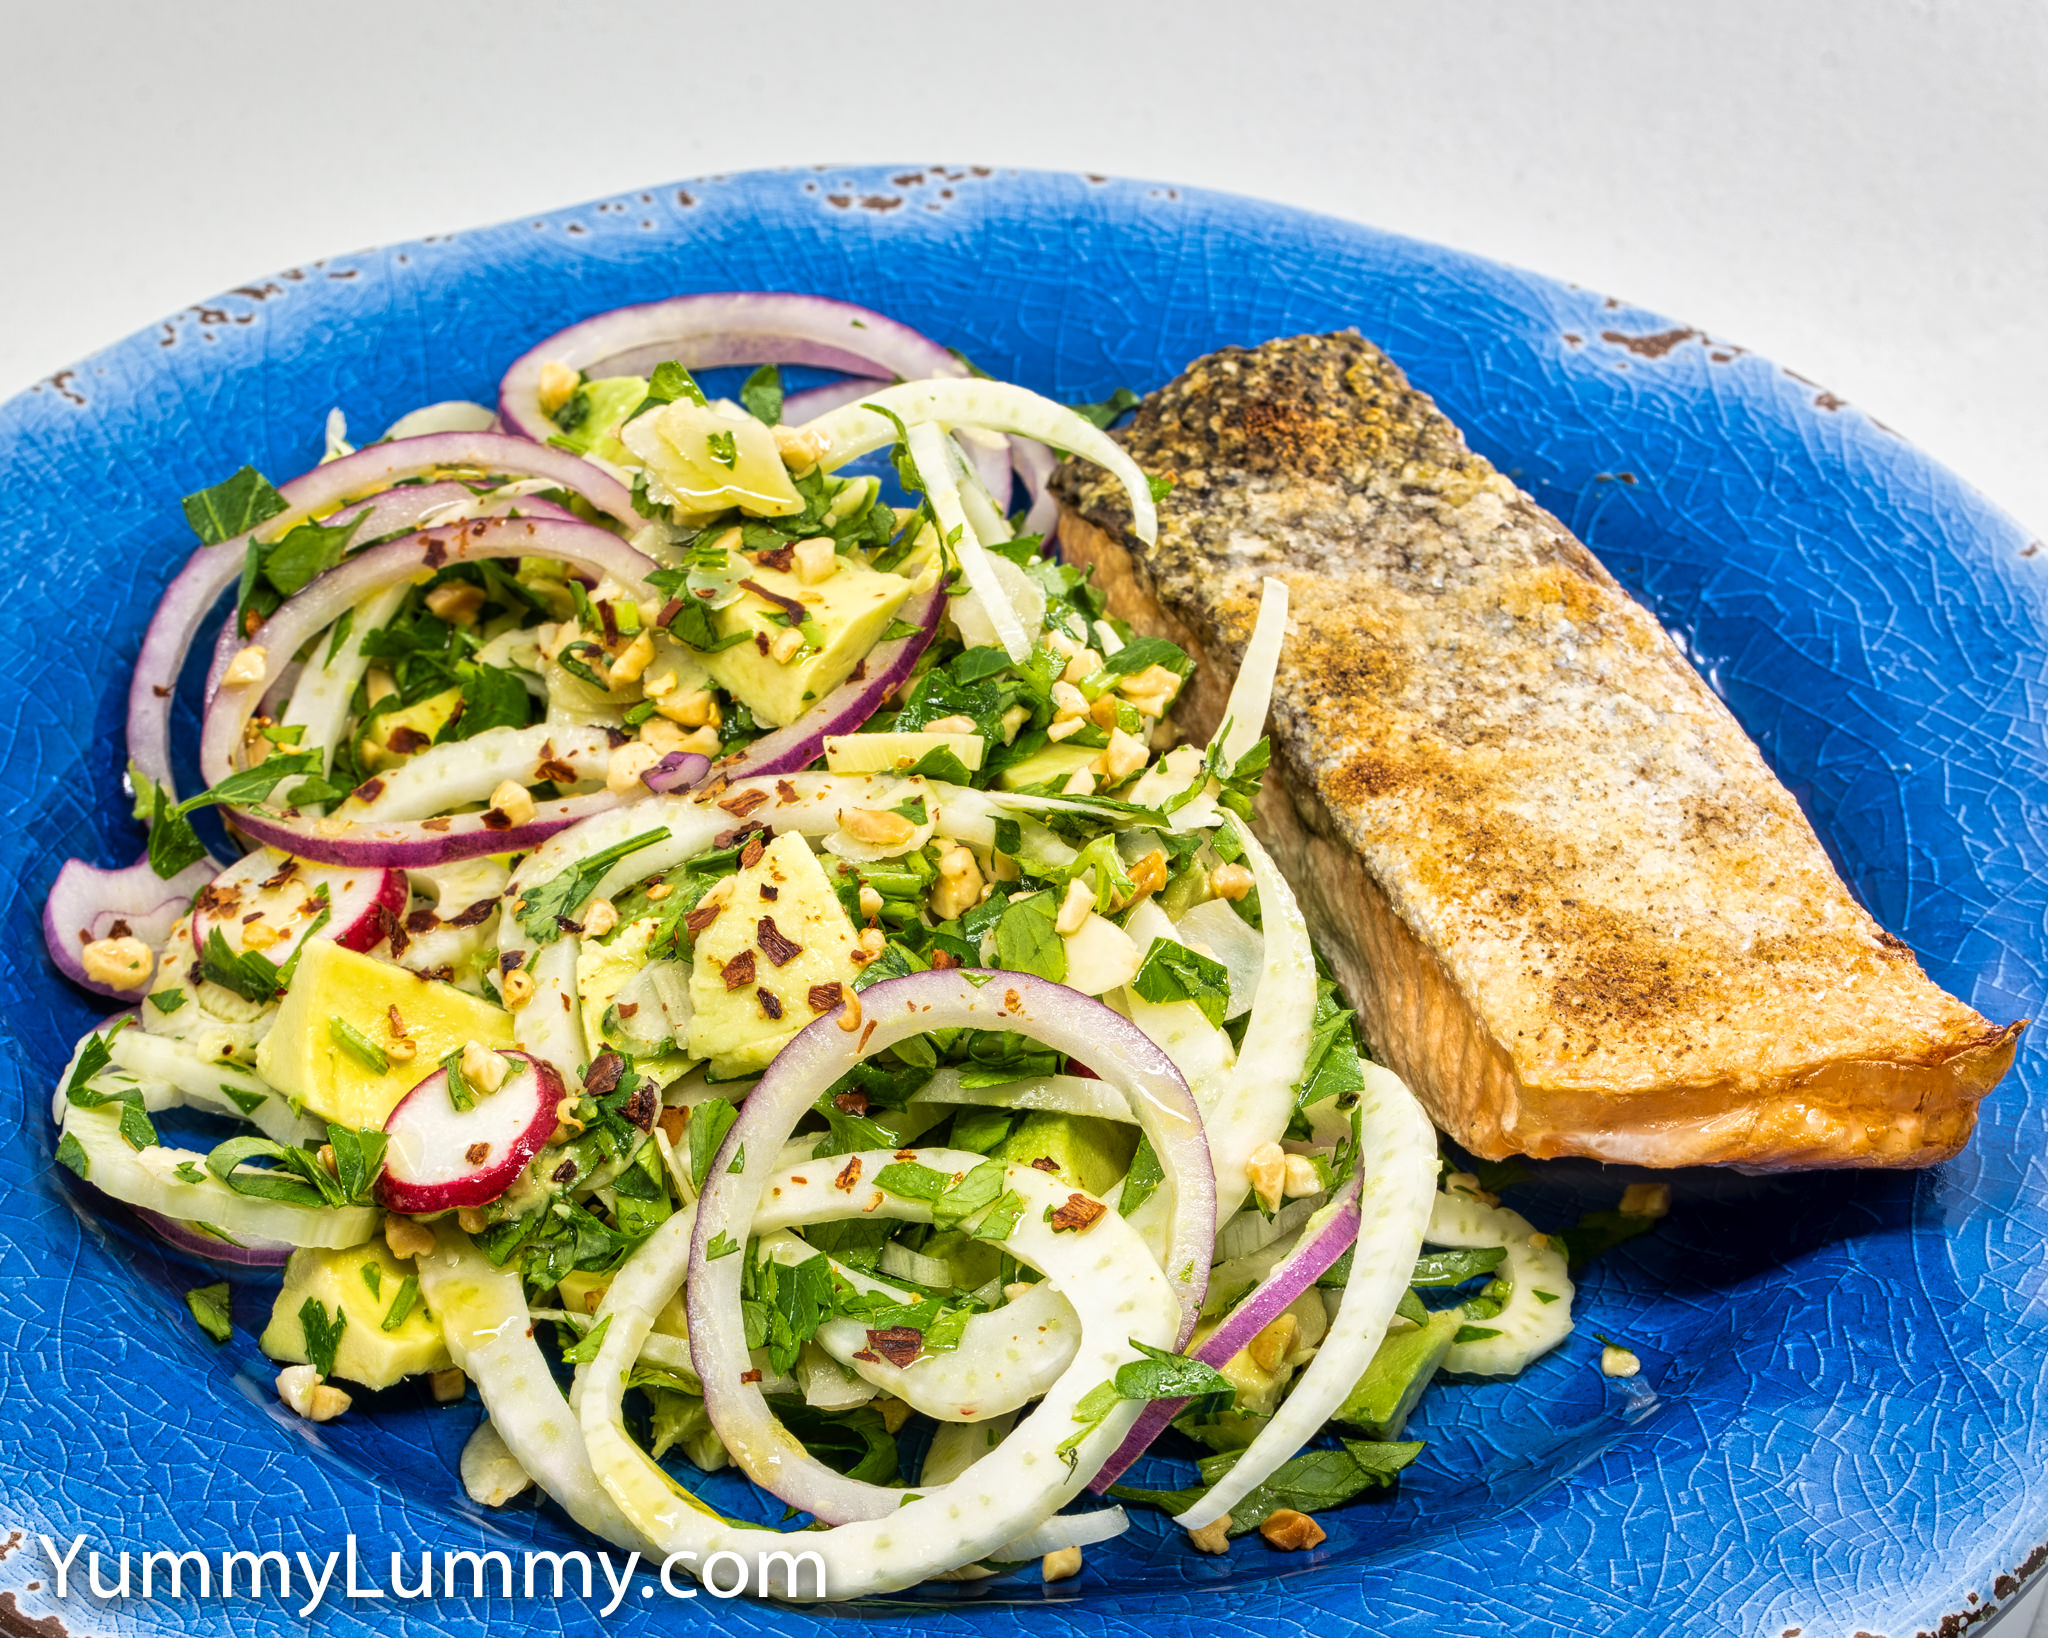 Photograph of baked salmon with avocado fennel salad. Gary Lum.